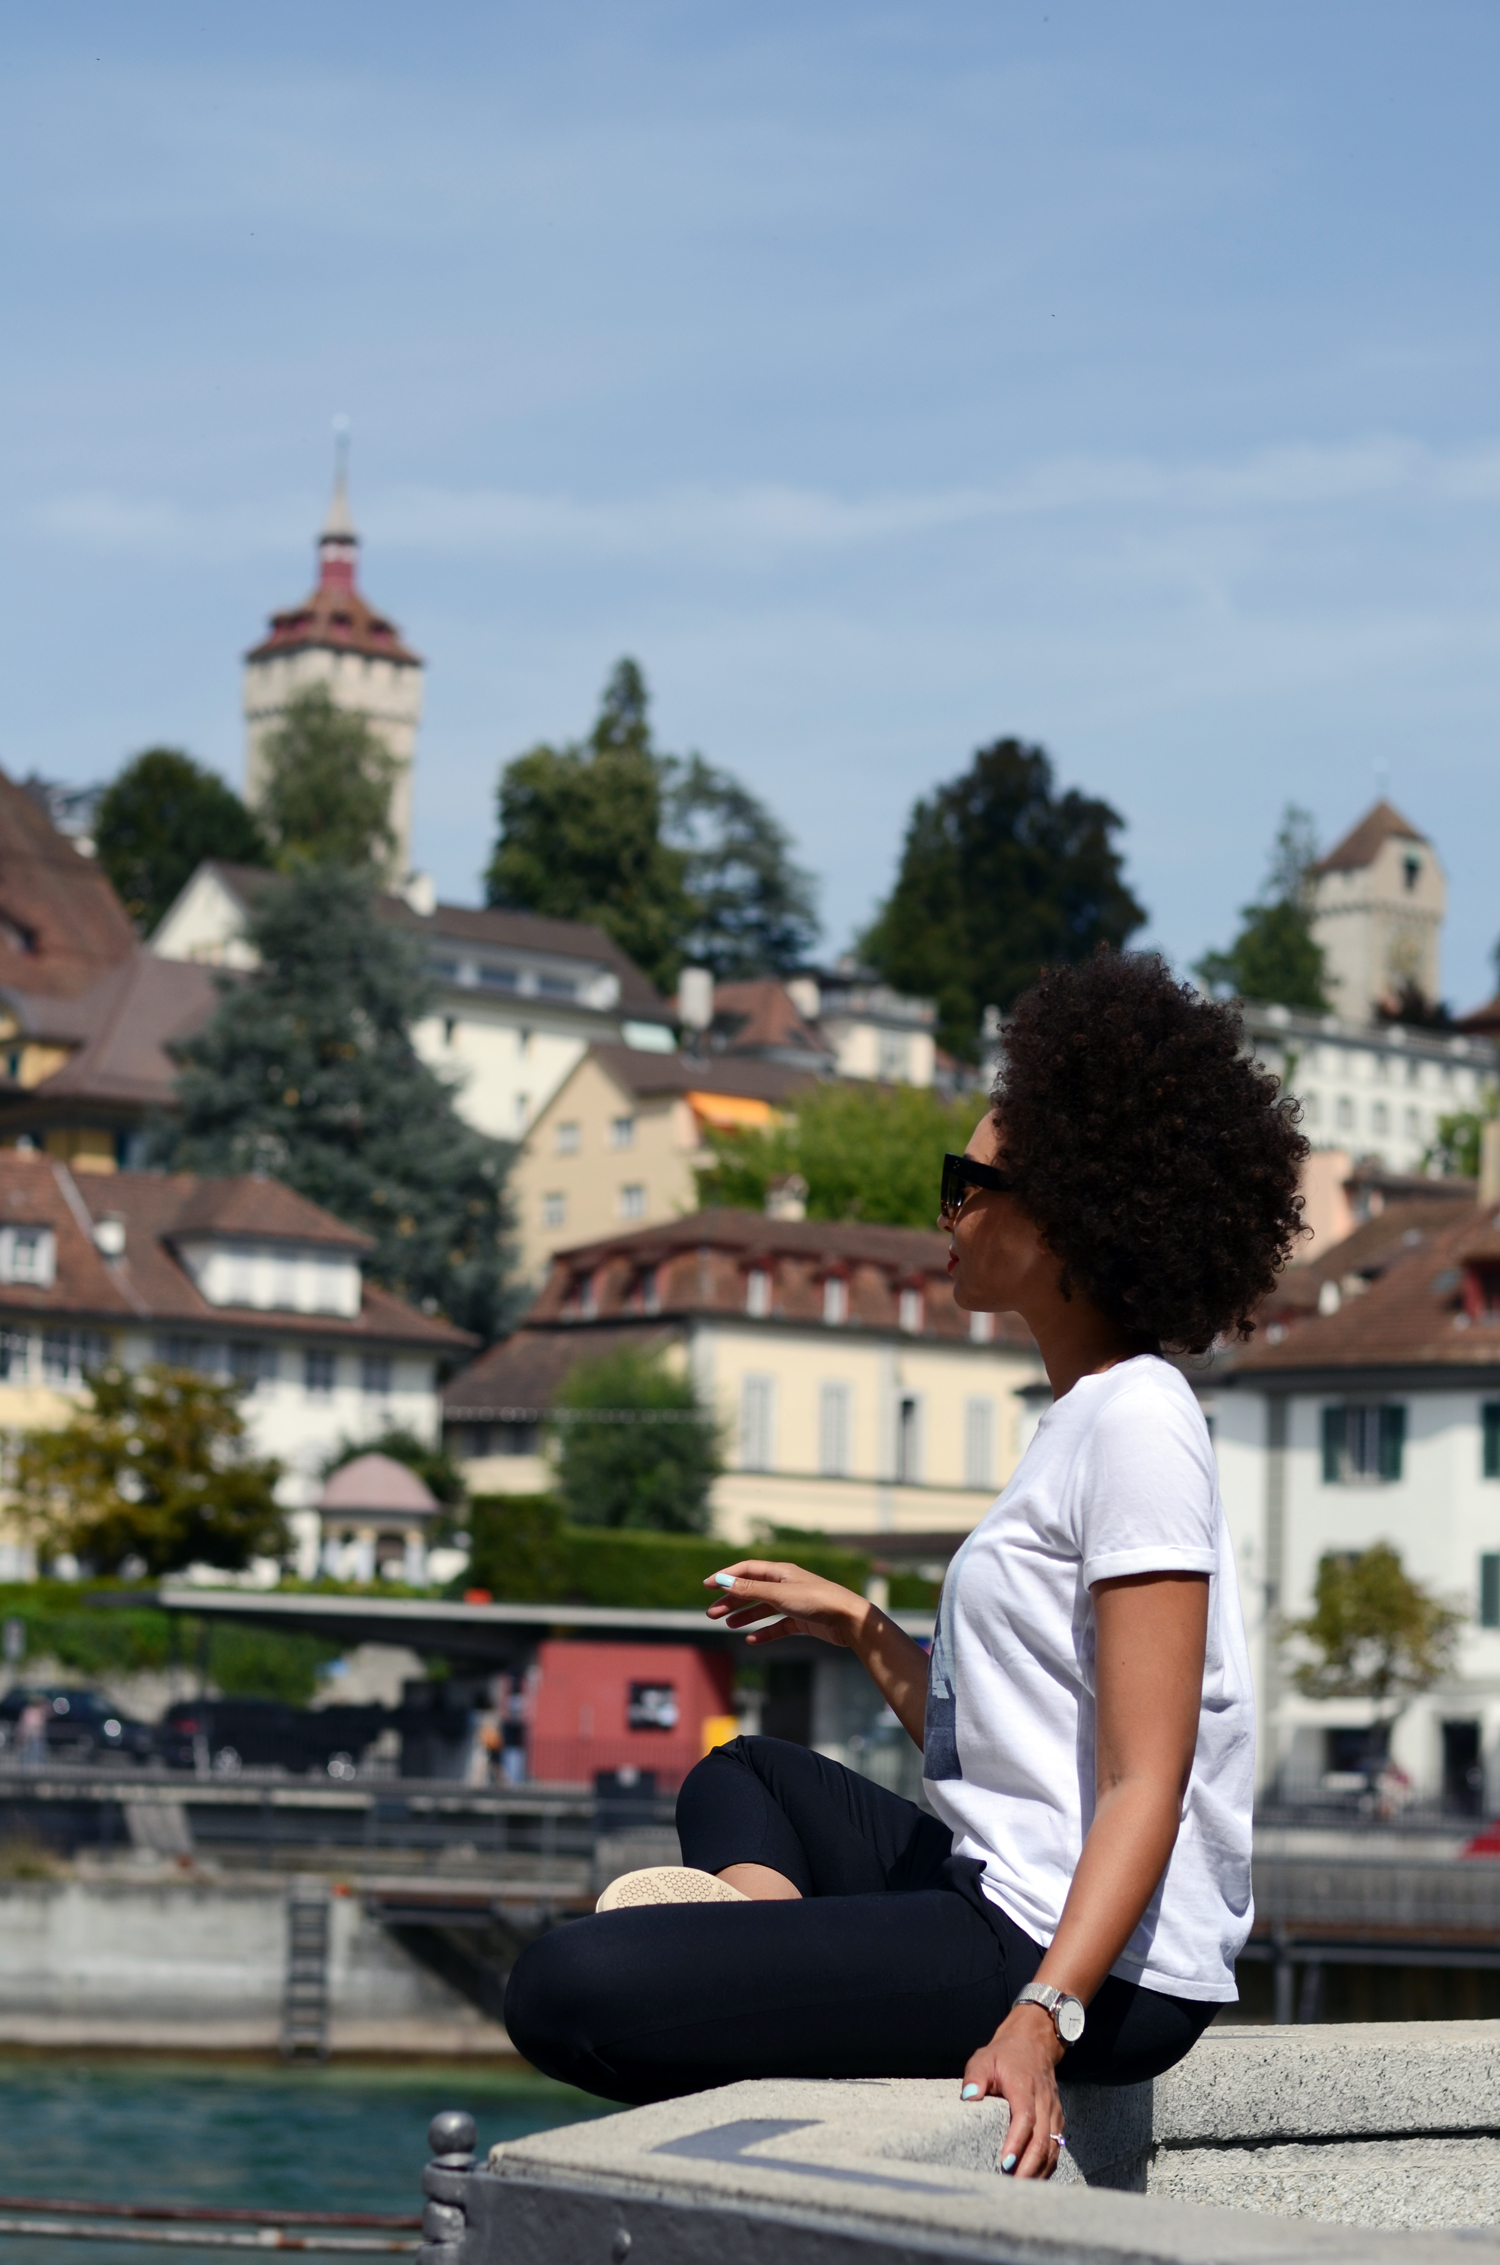 mercredie-blog-blogger-geneve-suisse-voyage-my-switzerland-grand-tour-roadtrip-europcar-accor-lucerne-luzern3